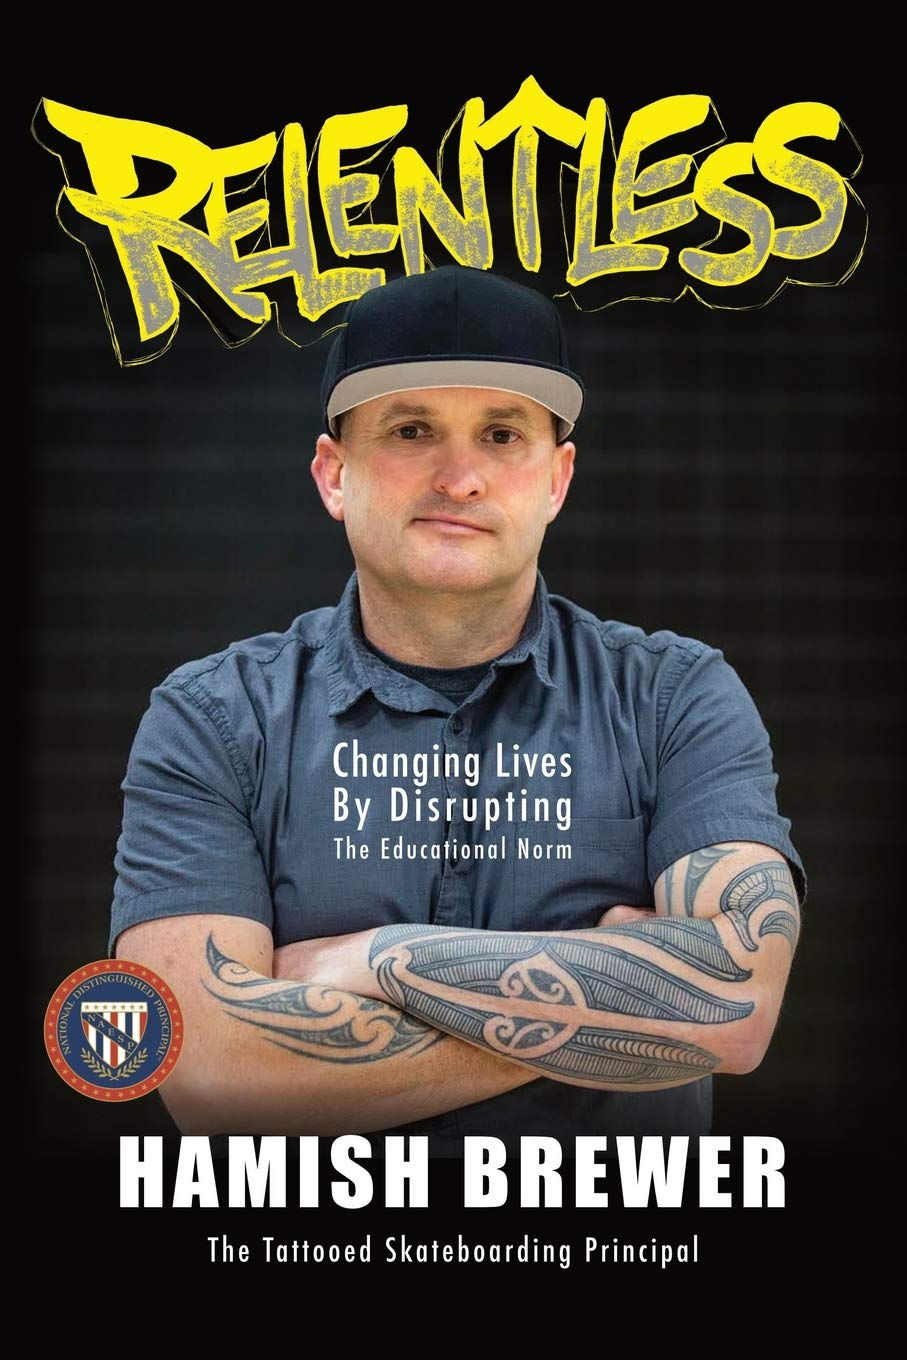 Relentless: Changing Lives by Disrupting the Educational Norm